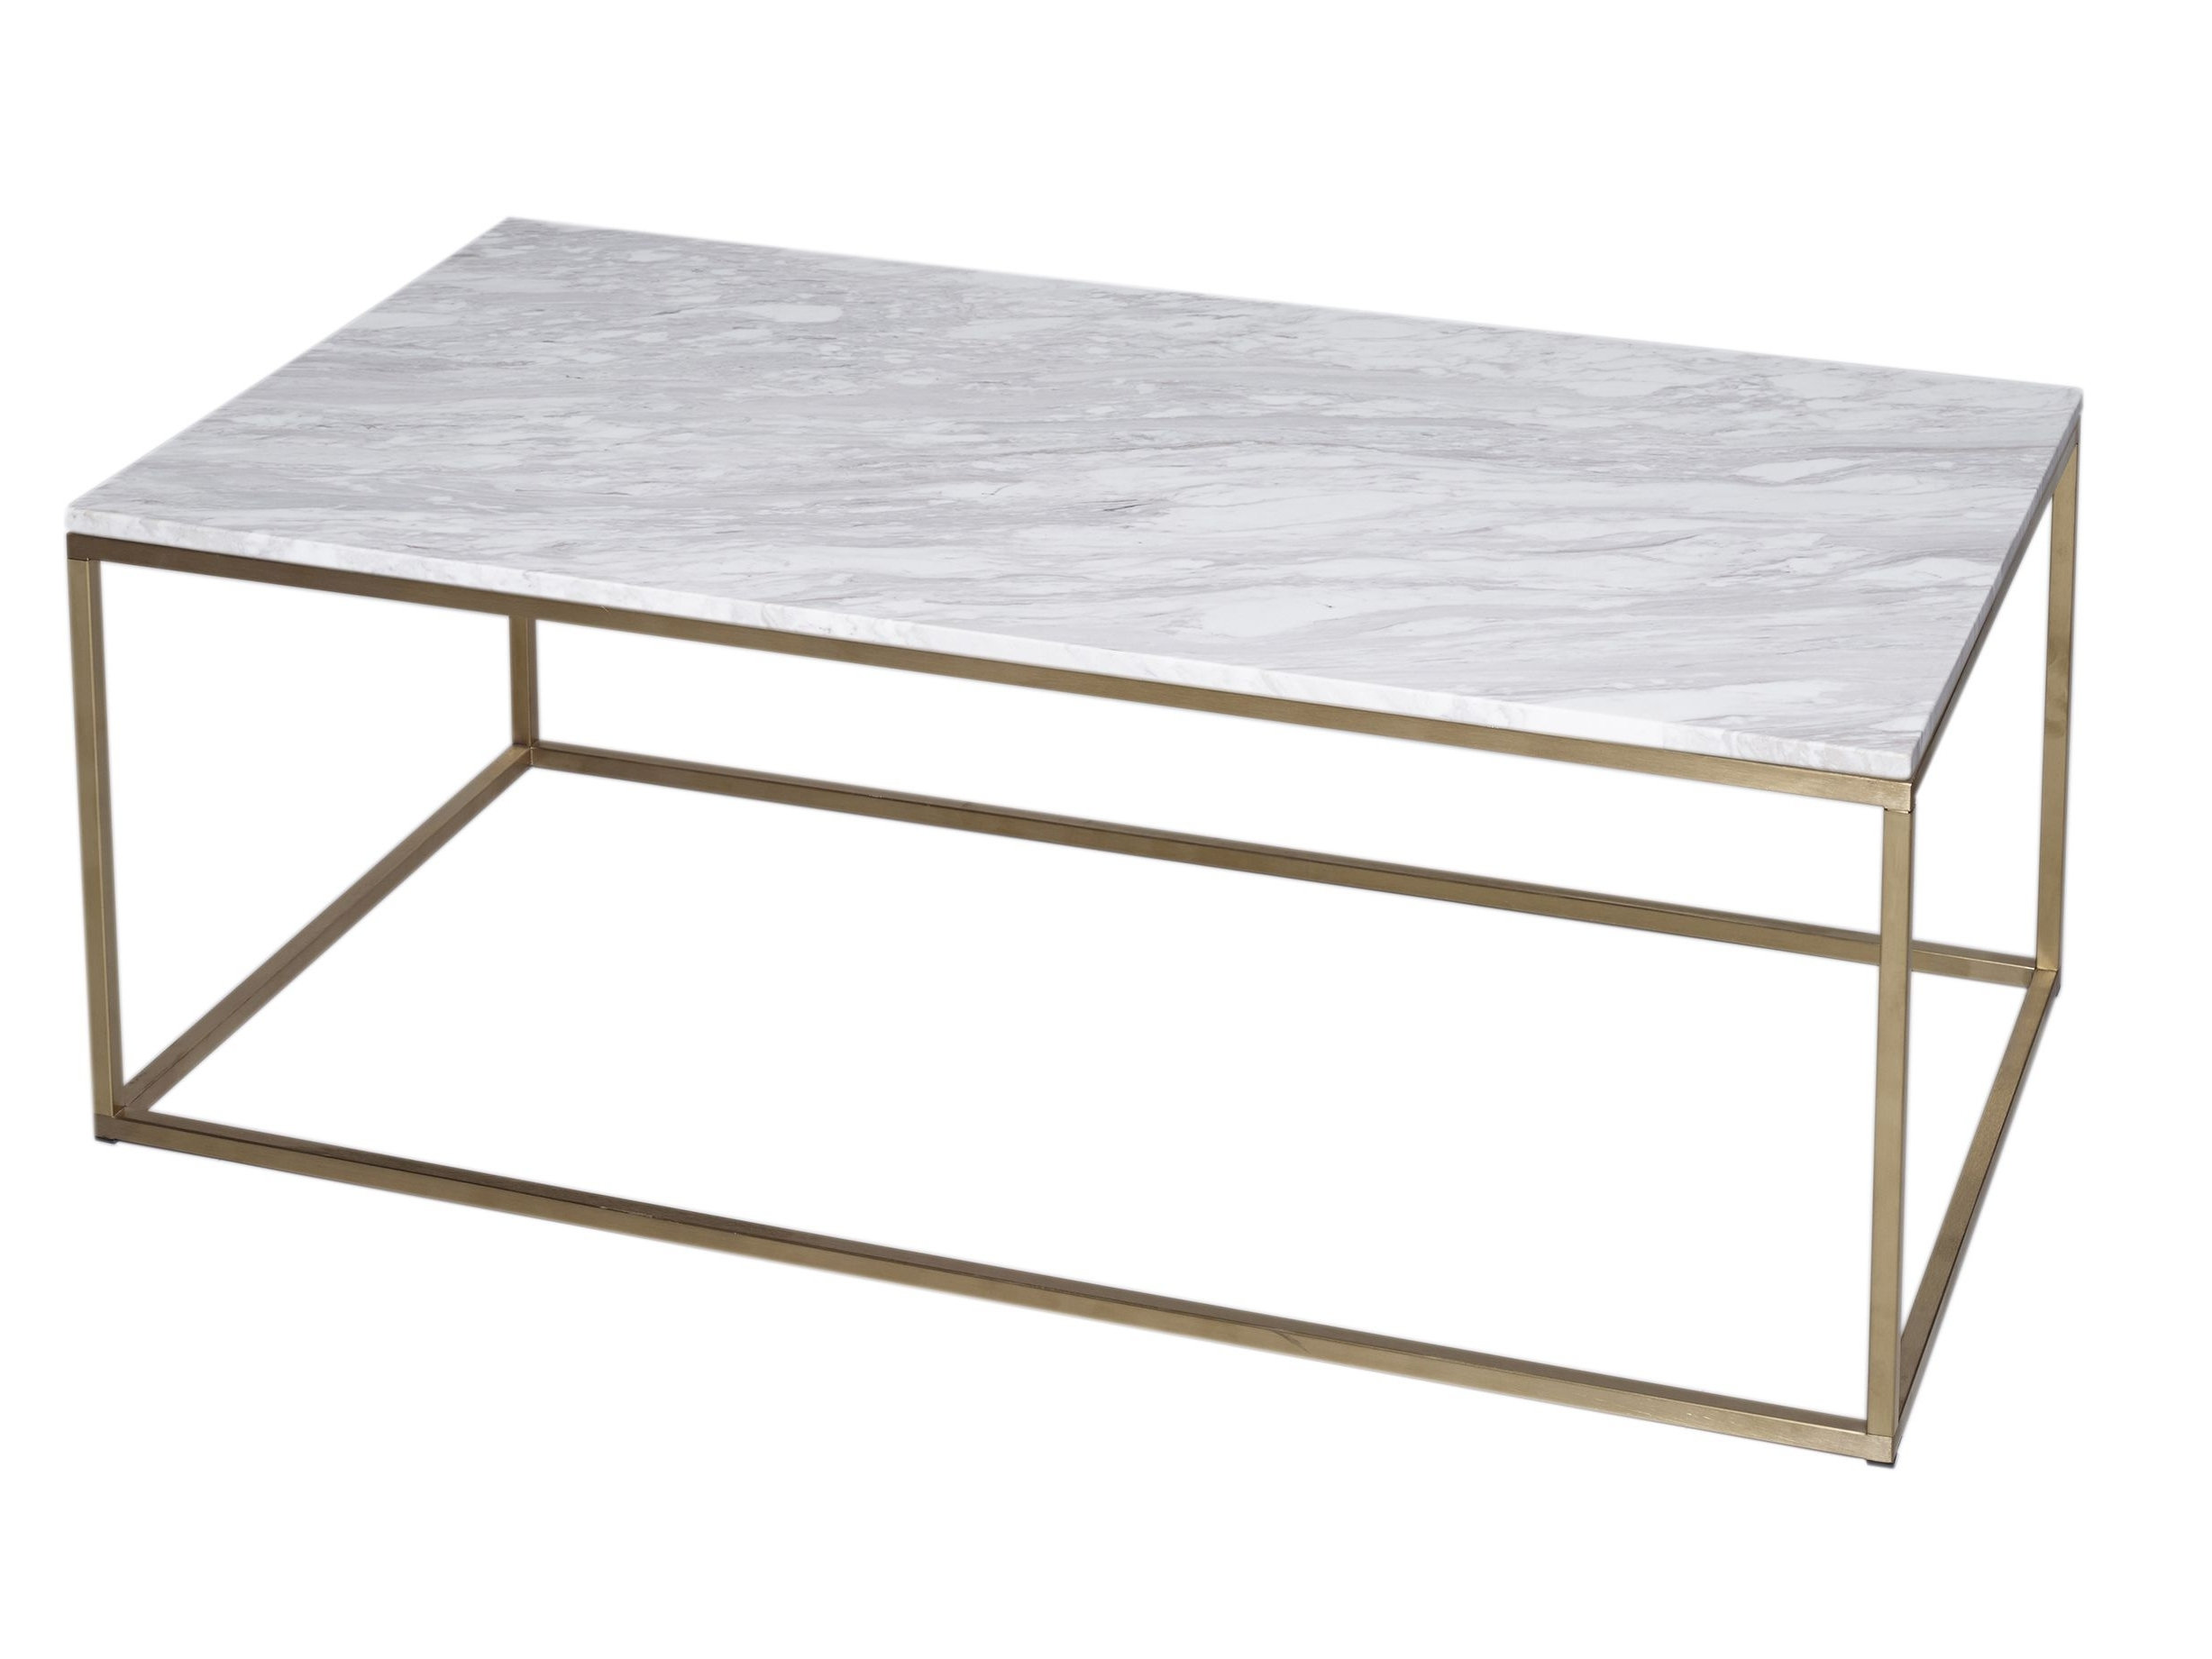 Trendy Rectangular Coffee Tables With Brass Legs With Regard To Rectangular Coffee Table – Kensal Marble With Brass Base (View 2 of 20)